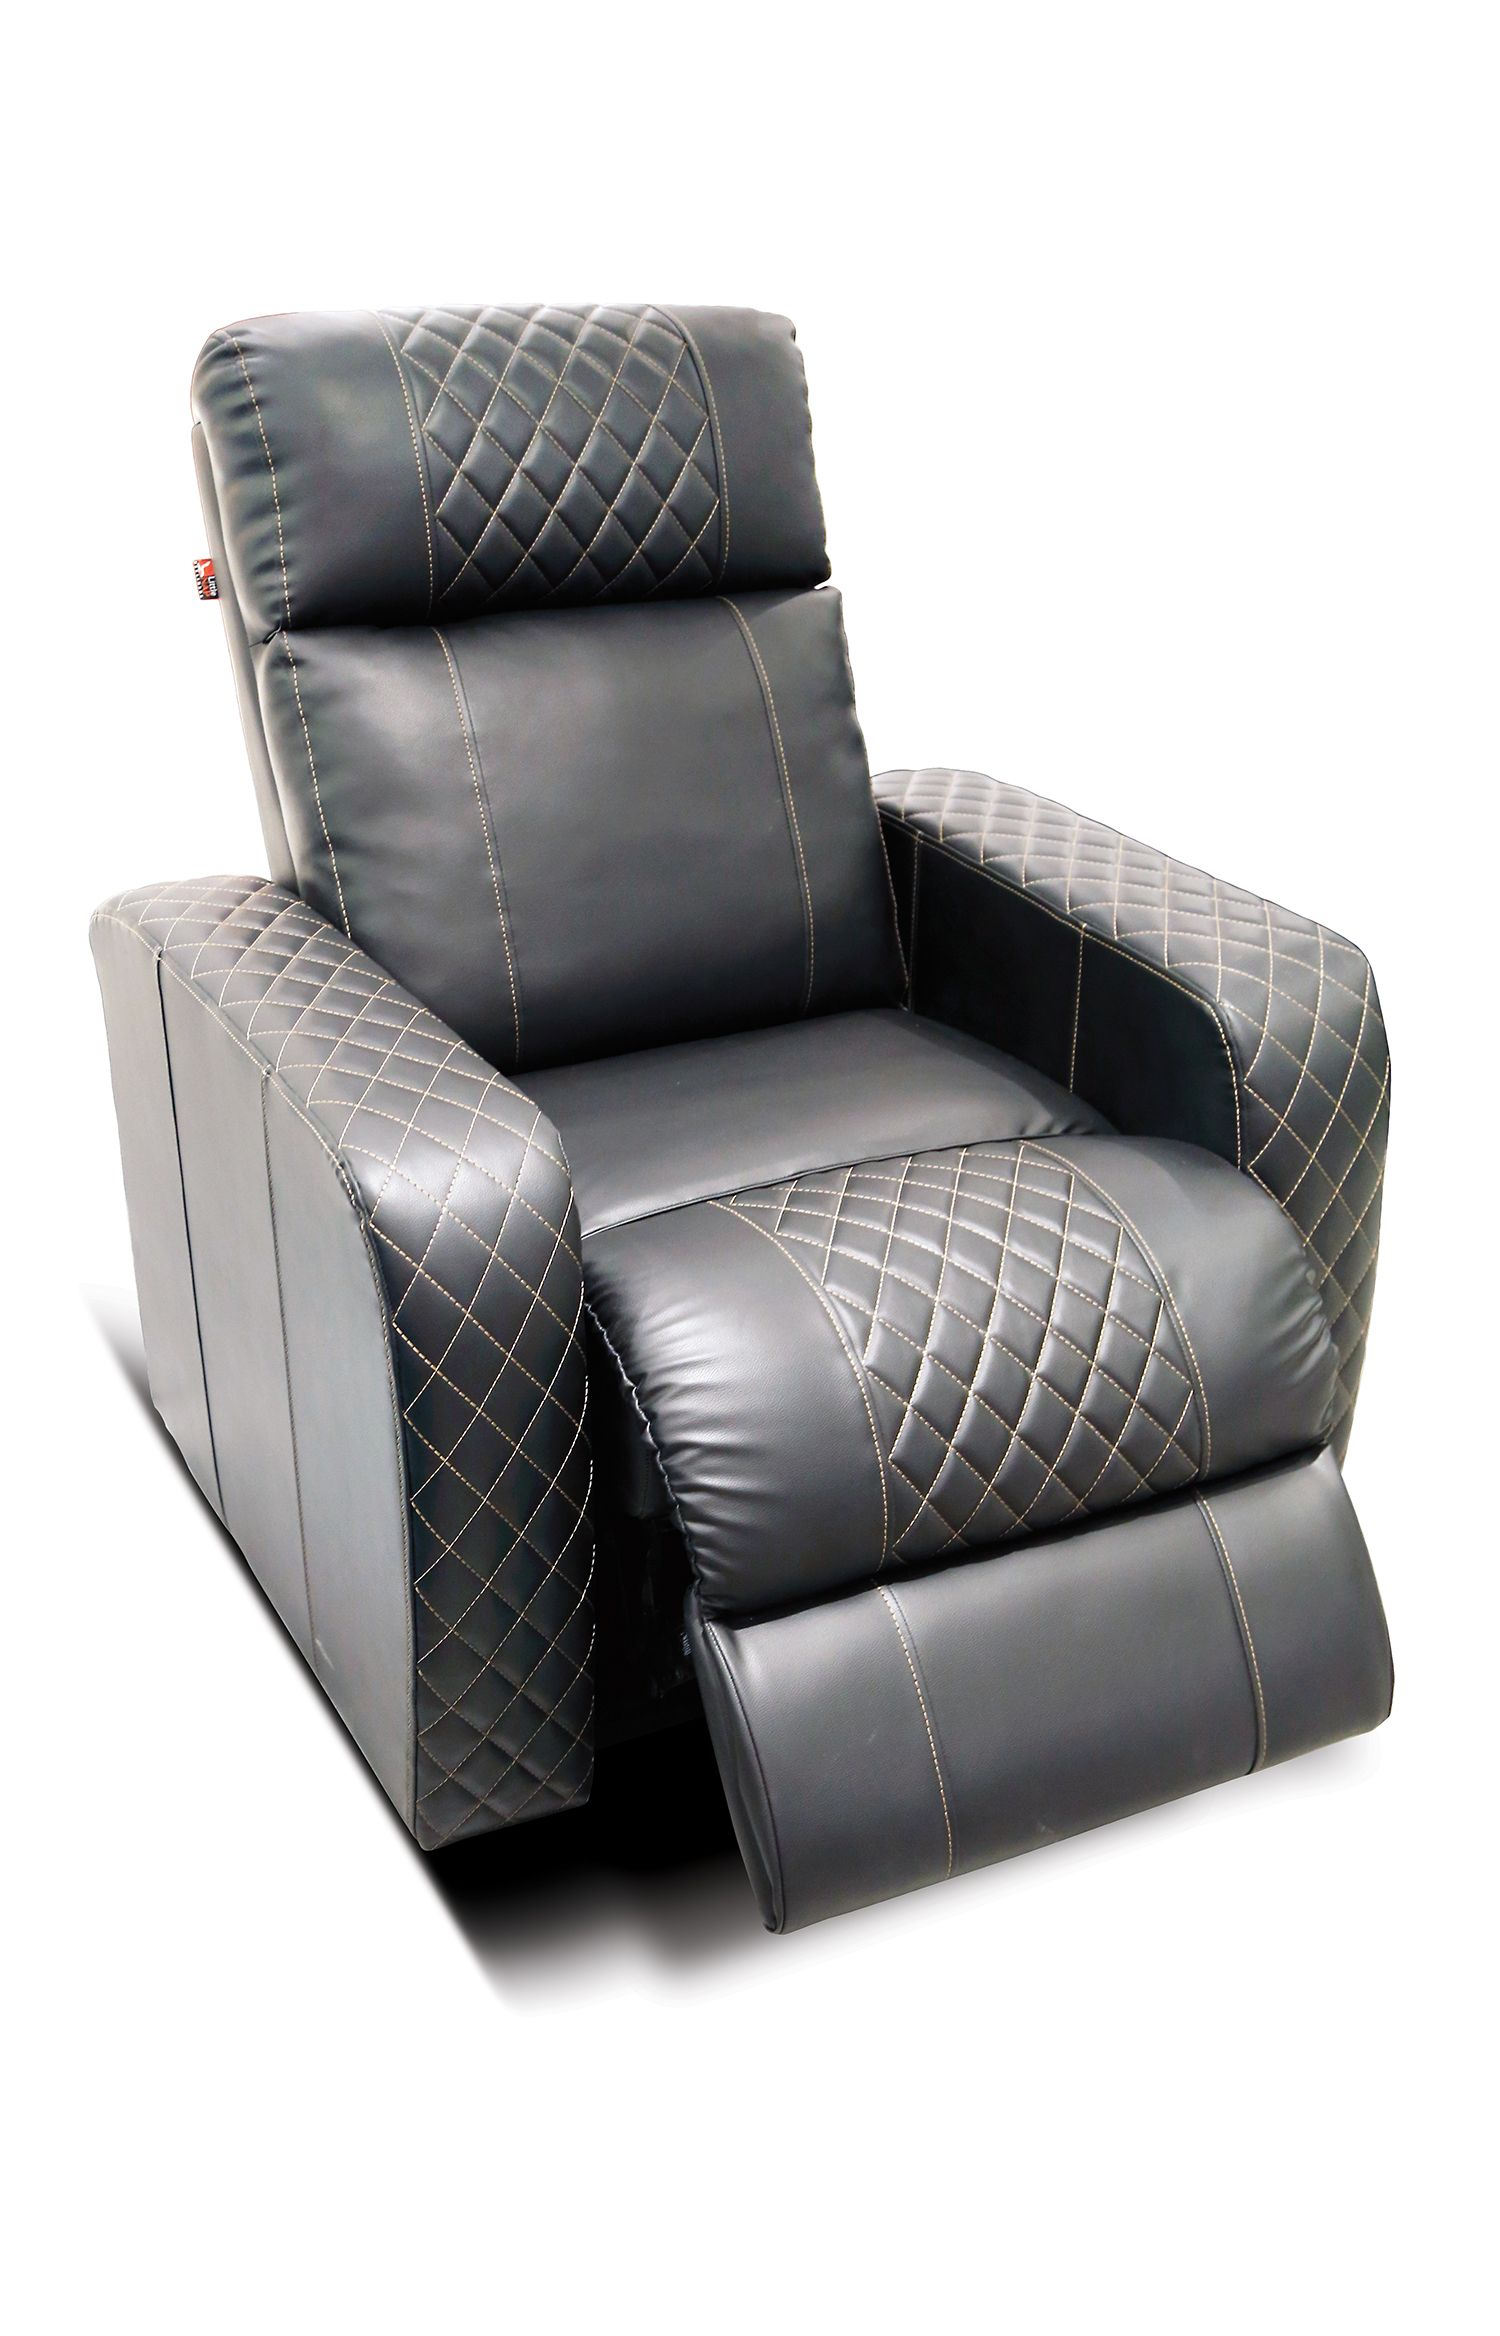 Little Nap Designs Provide Comfortable Home Theatre Recliners In Gurgaon Noida Bangalore Across All Over India Sofa Set Online Sofa Set Reclining Sofa